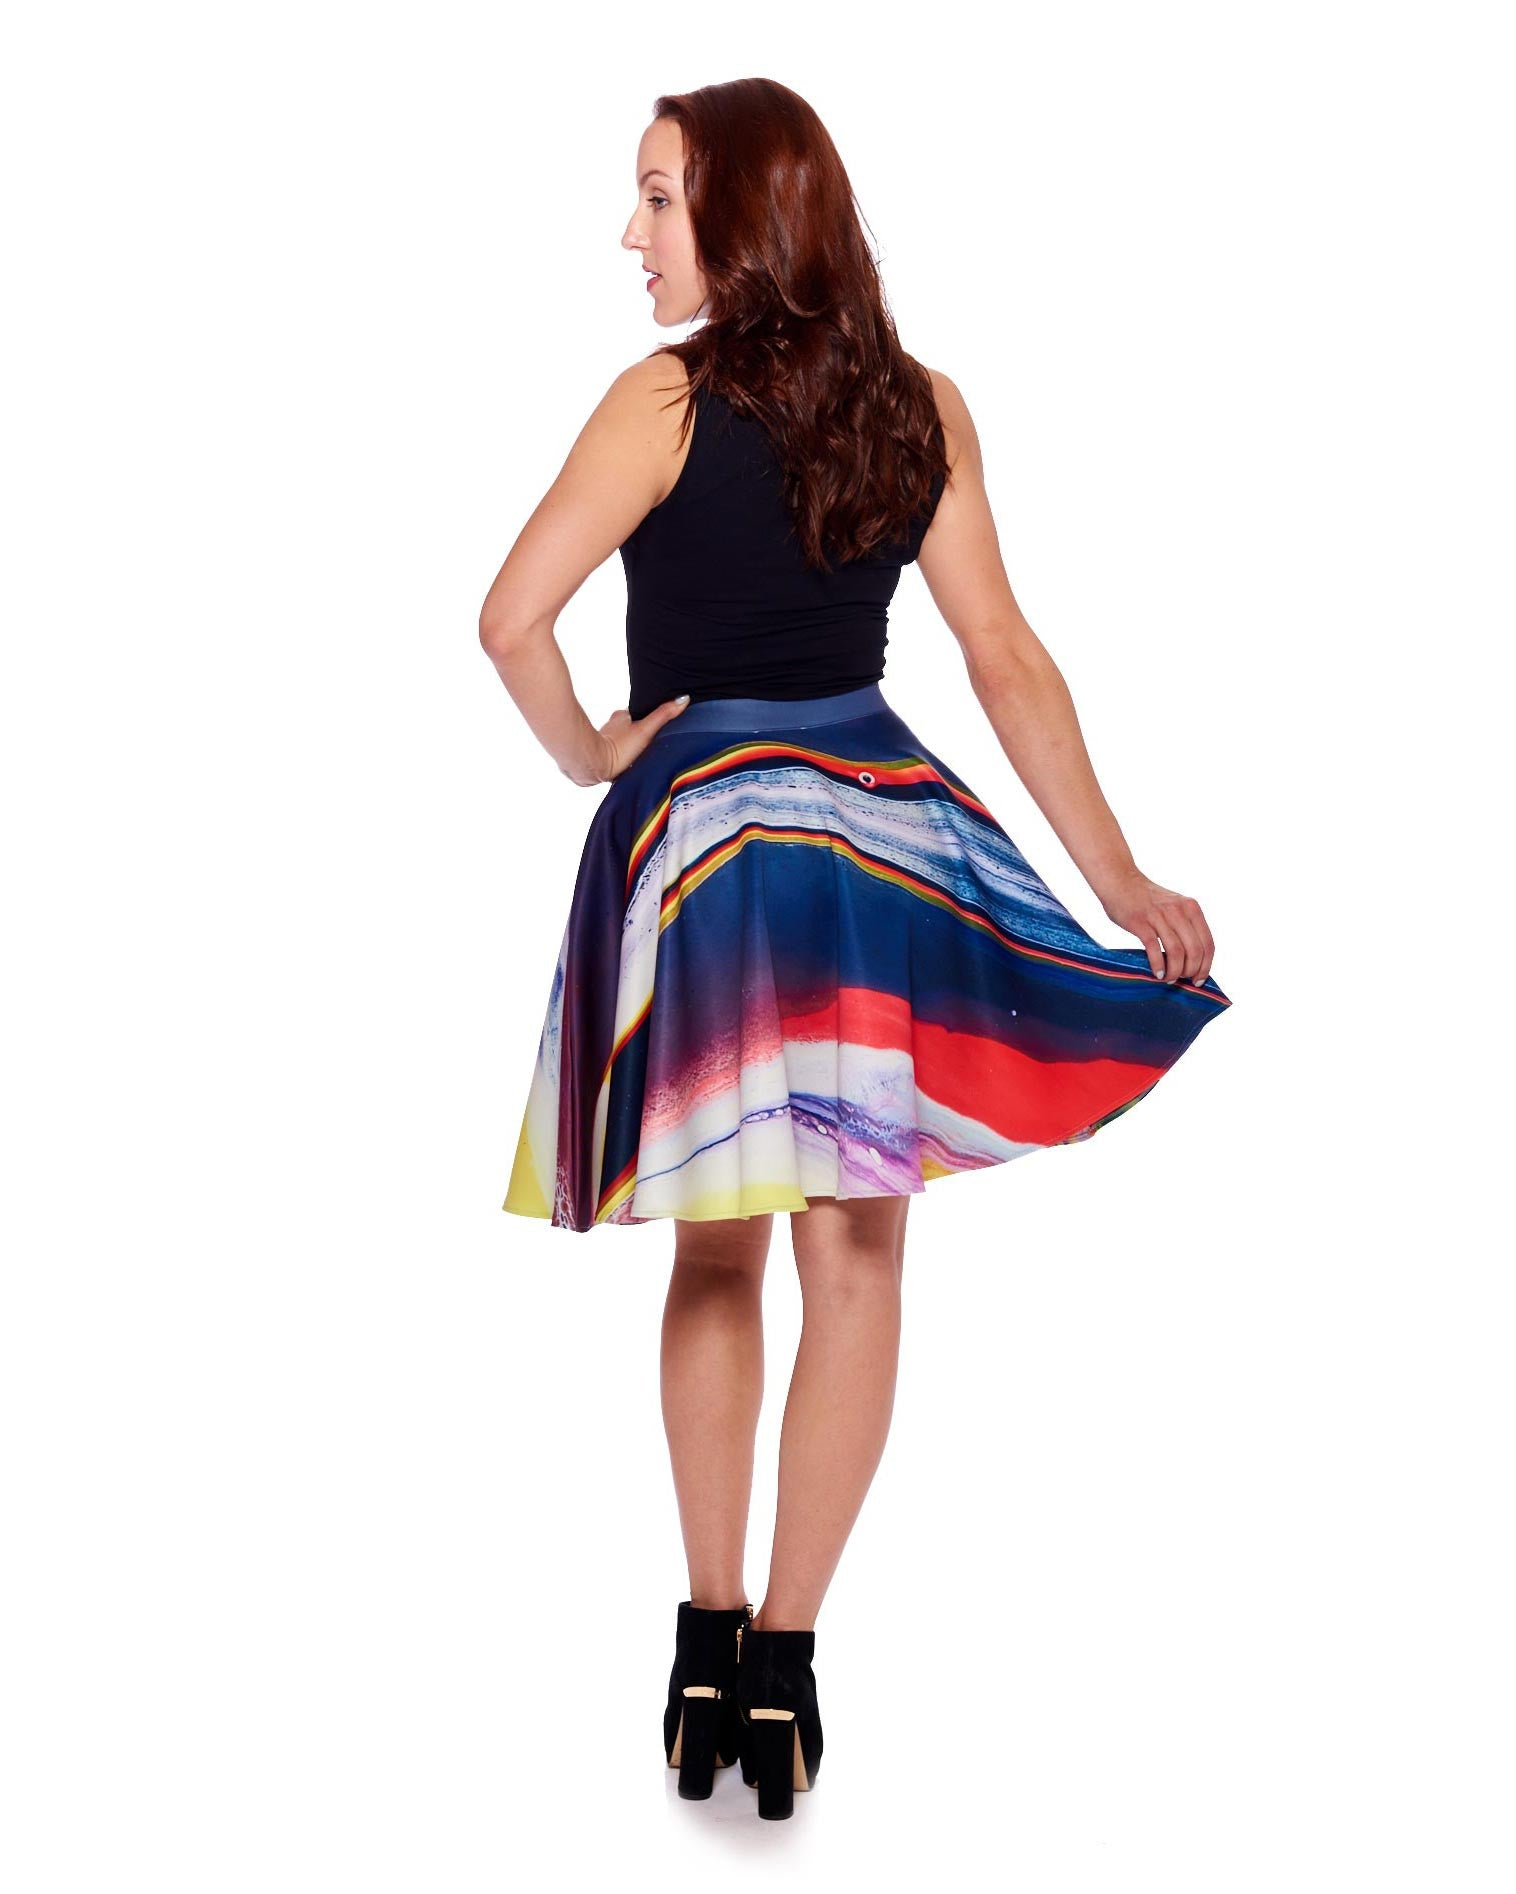 New Planet II Circle Skirt - Nuvango Gallery & Goods - 3